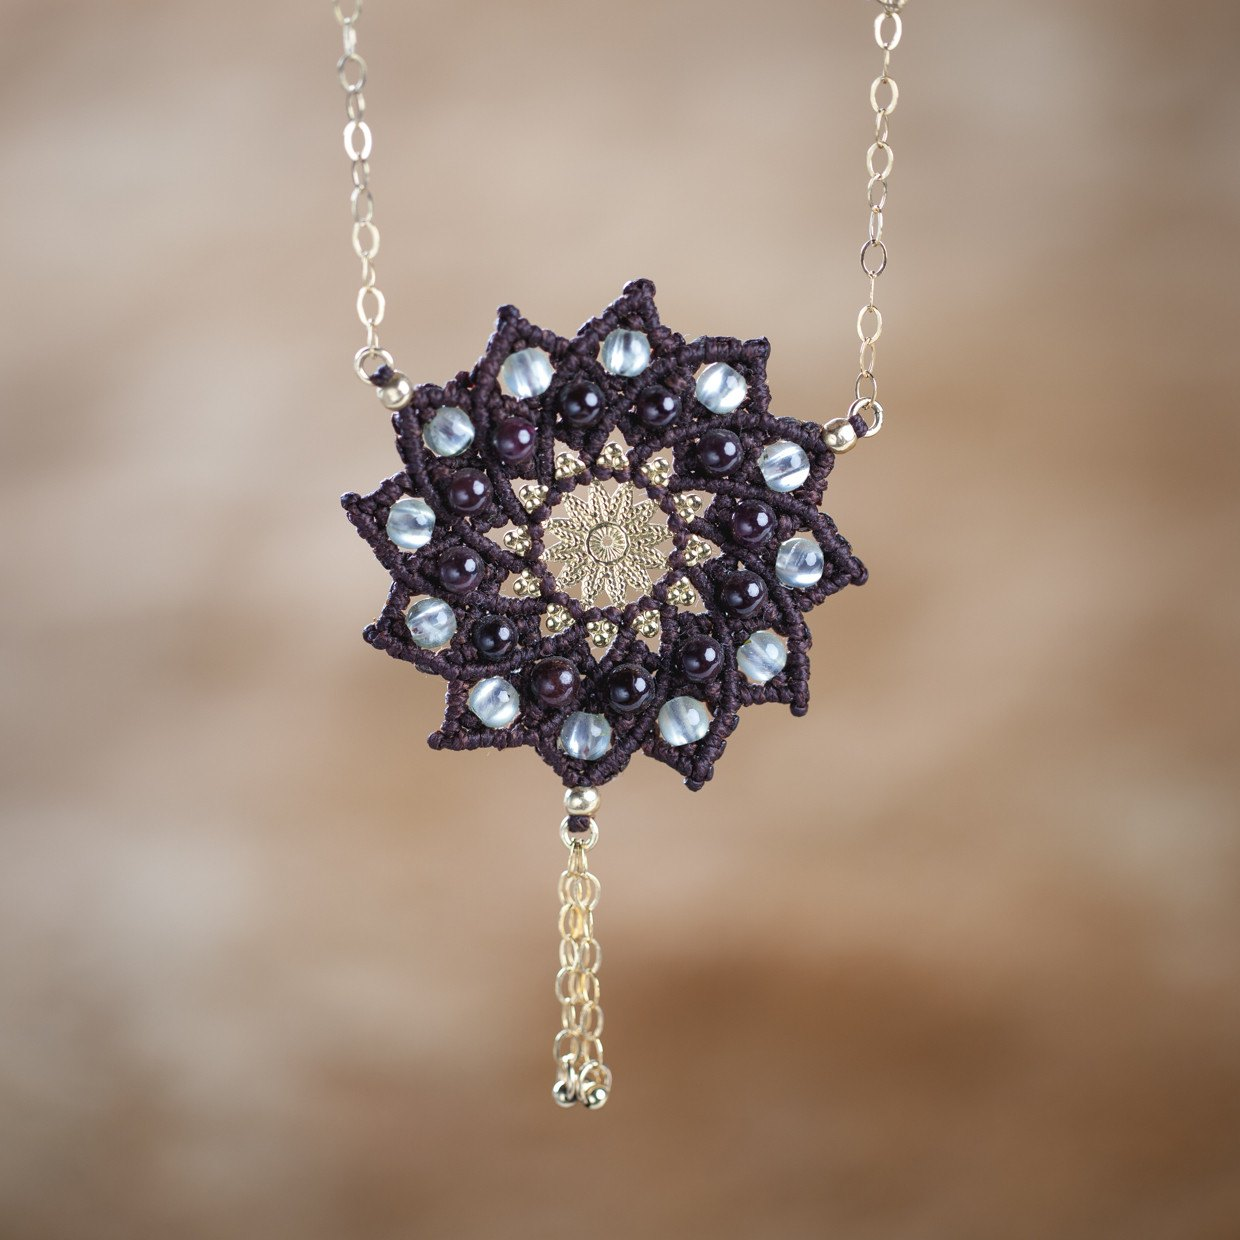 transcend buddhist products third eye blue mandala necklace